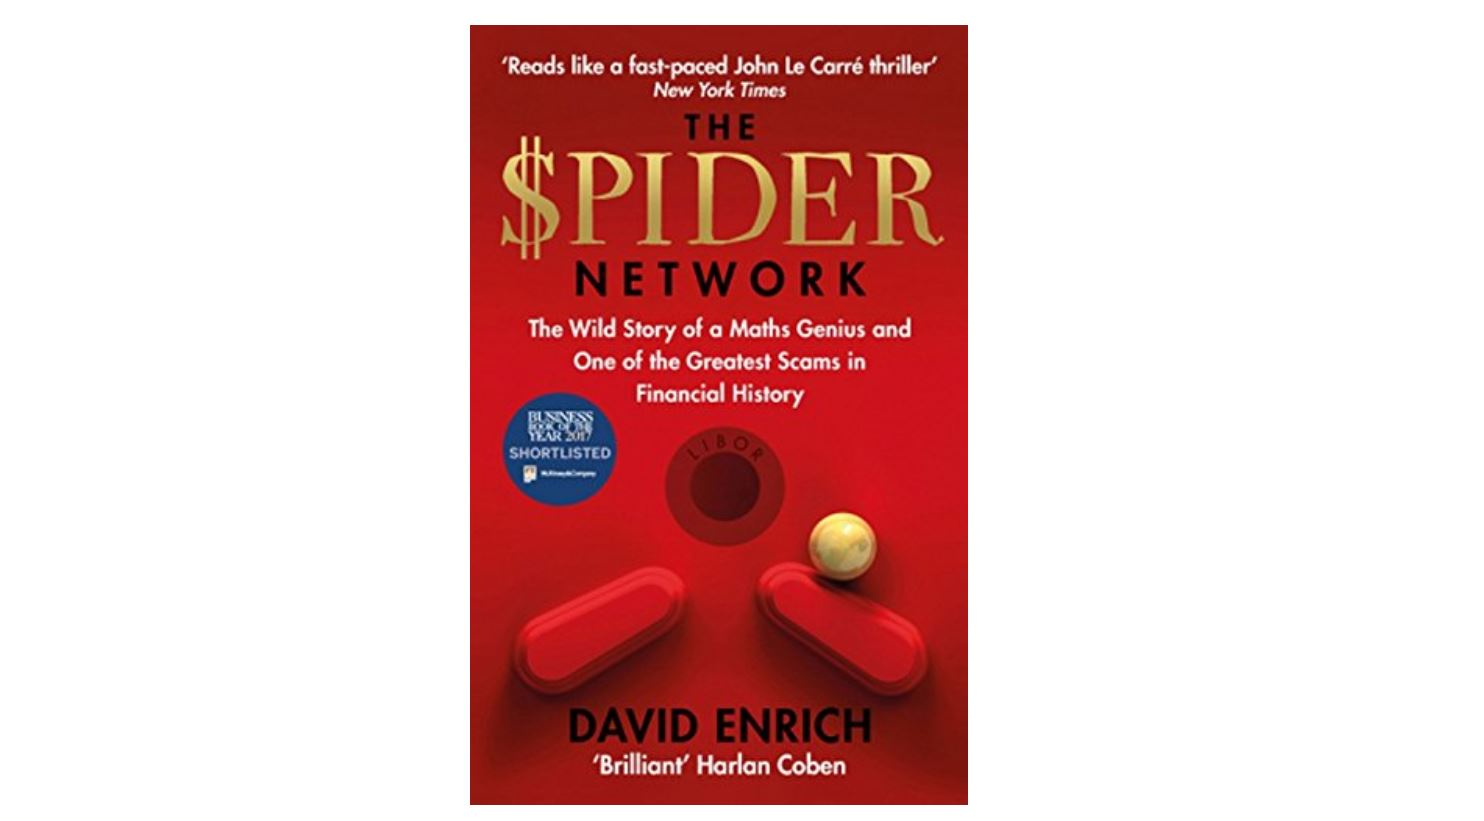 The Spider Network by David Enrich | Of the dozen-odd books I read during the year, The Spider Network by David Enrich was the most enjoyable. What I liked about the book is that it is well researched, has lots of people in it, and does a very good job of detailing the scam and its implications in an easy to understand manner. For me, Den of Thieves is the gold standard for books on the 80s insider trading scandal in the US stock market. The Spider Network easily ranks alongside it in chronicling one of the biggest bond market frauds in living memory. Till I read the book, I felt the Libor scam was the handiwork of a few rogue traders across the banks. I was stunned to learn from the book that the fixing of Libor rates was not just an open secret, but it was also institutionalised. – Santosh Nair (Image: Amazon)